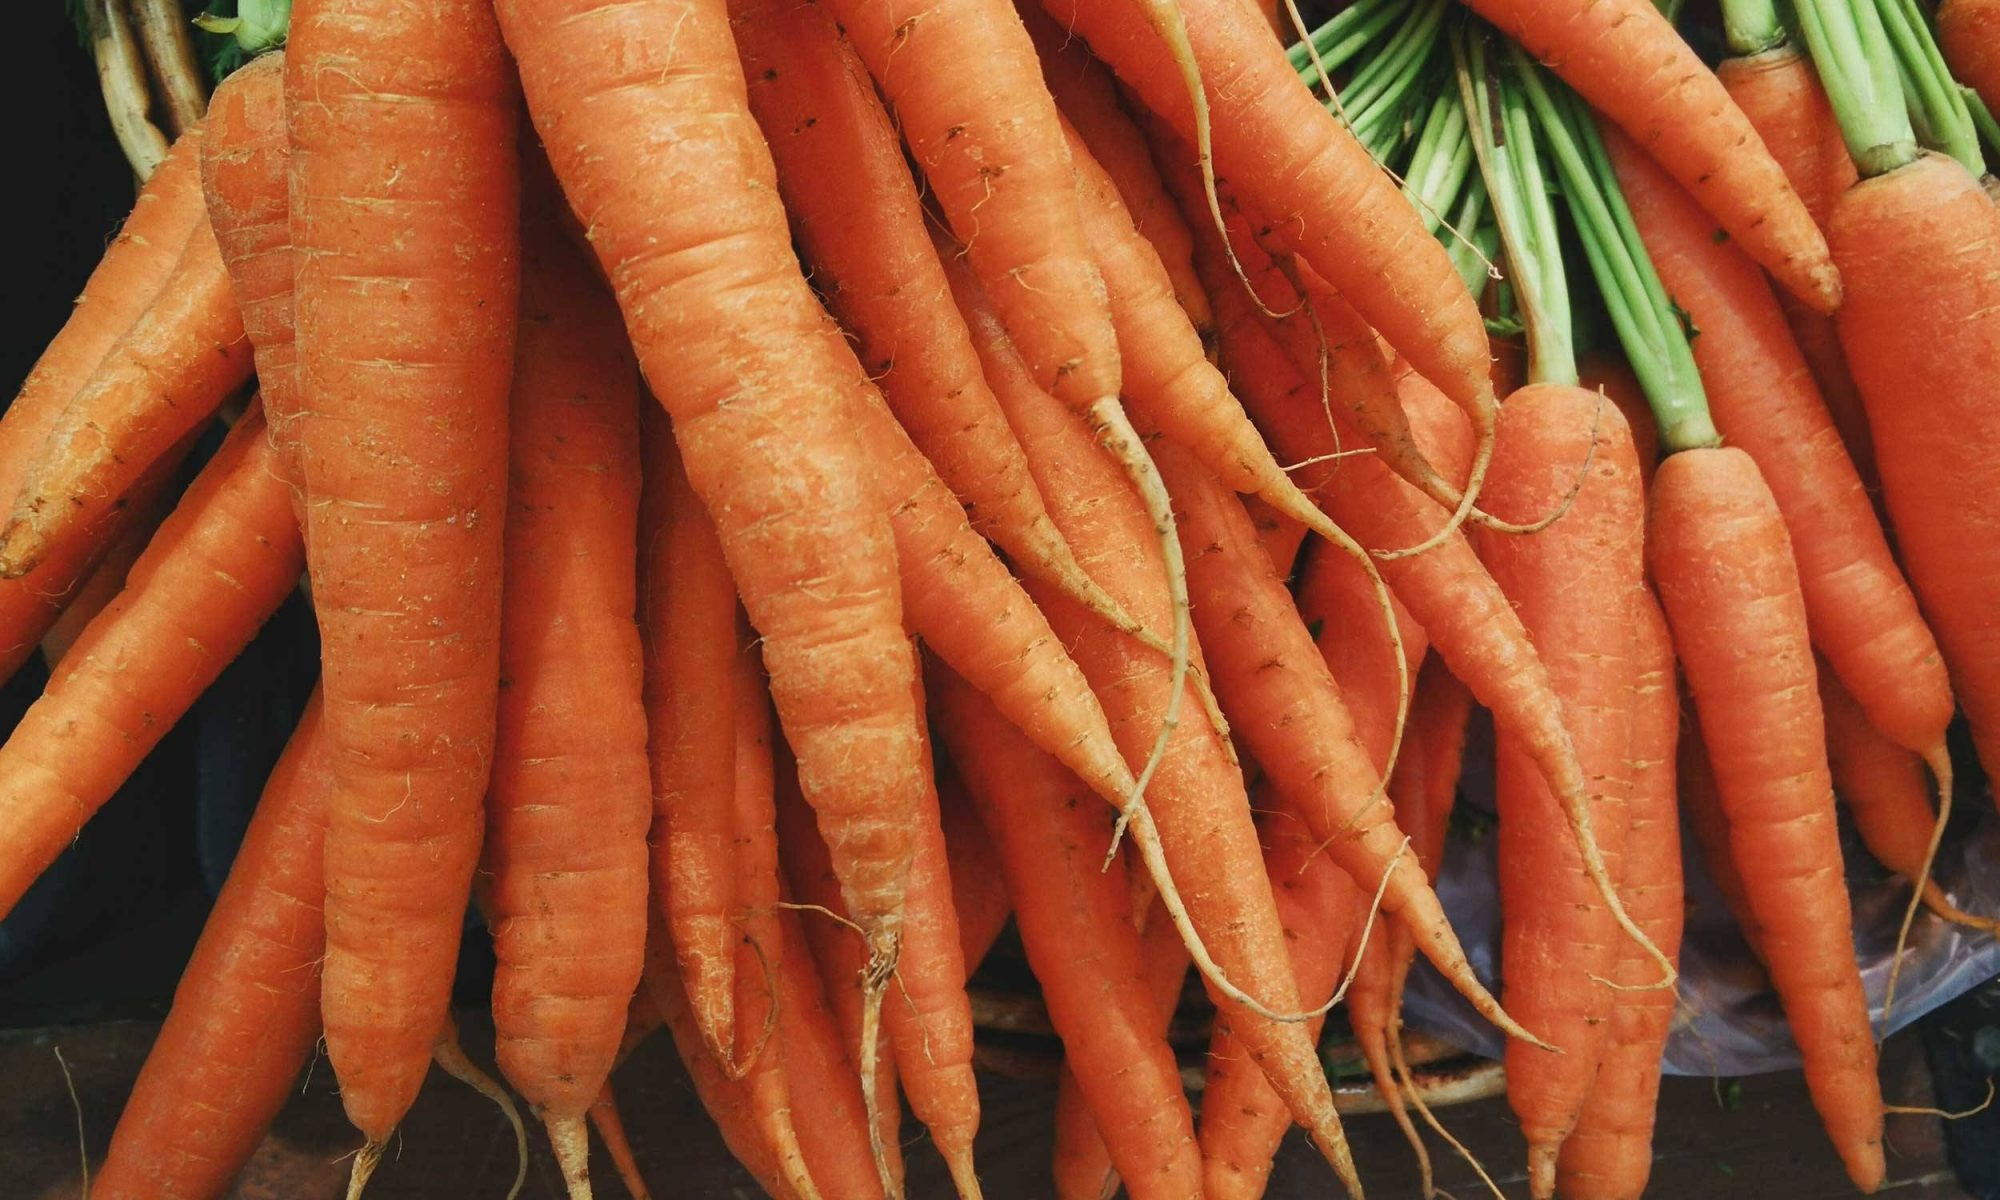 How to Store Carrots So They Don't Wilt